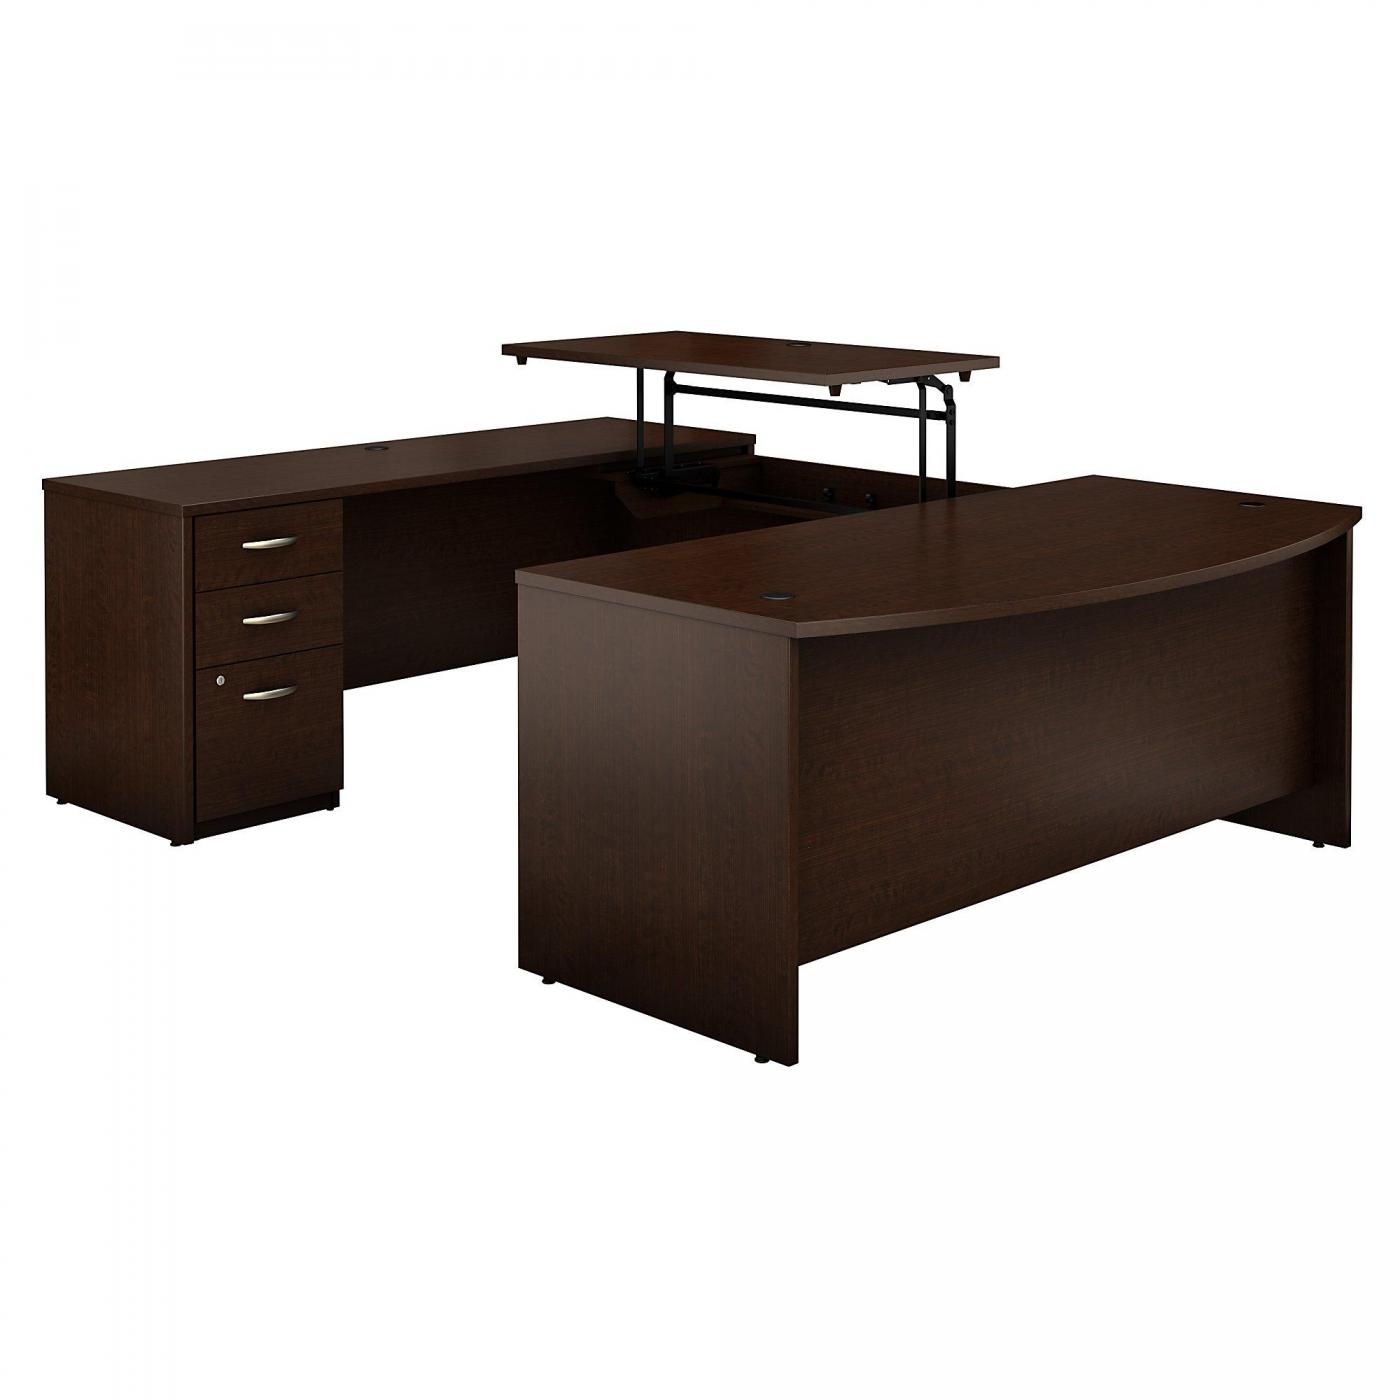 </b></font><b>BUSH BUSINESS FURNITURE SERIES C ELITE 72W X 36D 3 POSITION SIT TO STAND BOW FRONT U SHAPED DESK WITH 3 DRAWER FILE CABINET. FREE SHIPPING. VIDEO:</b></font>  VIDEO BELOW. <p>RATING:&#11088;&#11088;&#11088;</b></font></b>